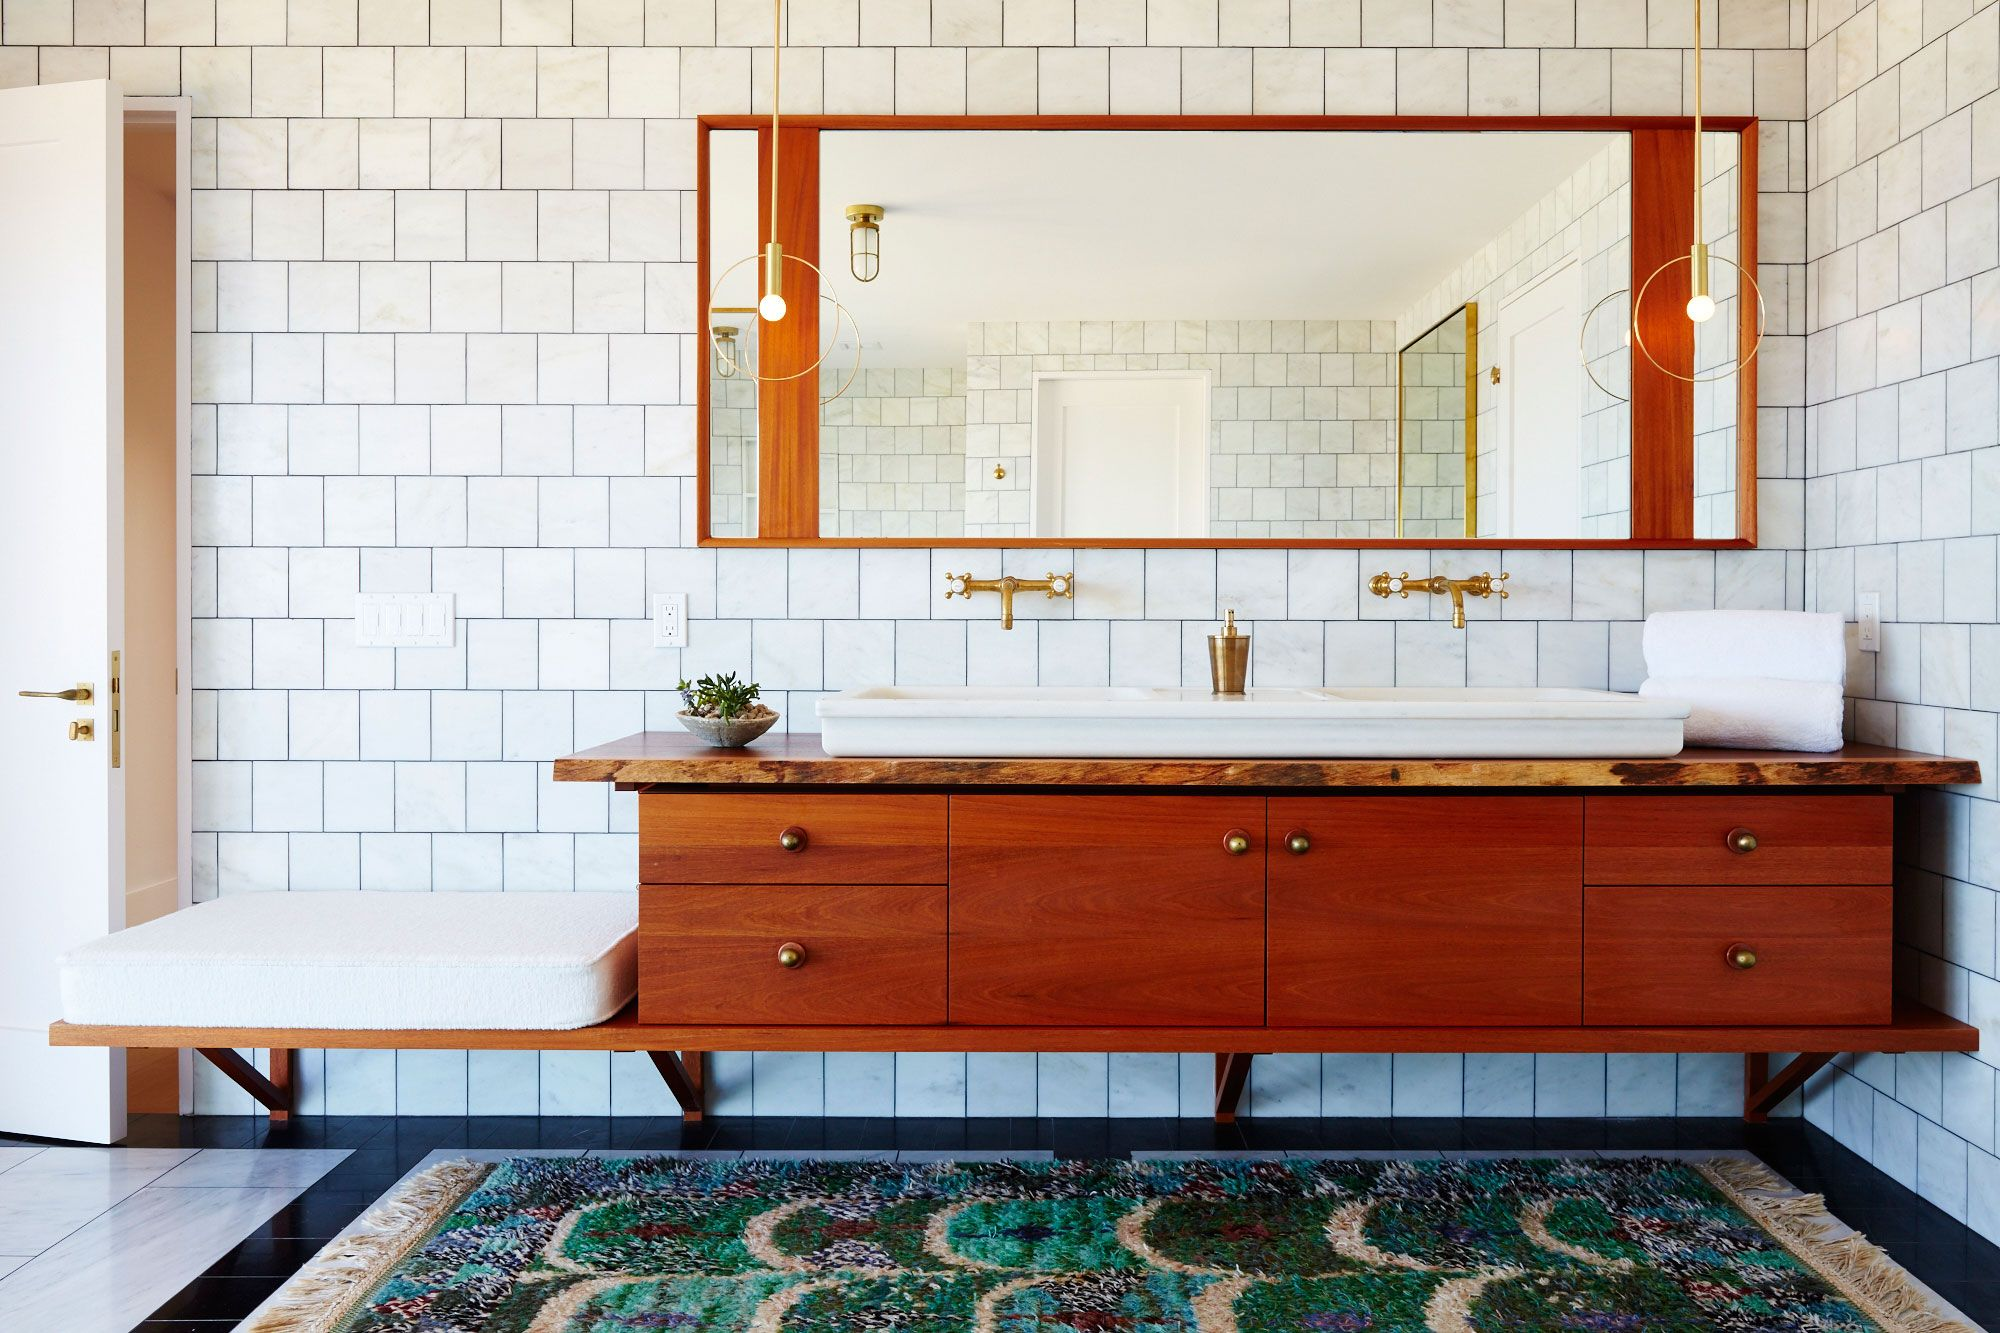 65 Fresh Bathroom Ideas to Make Your Space Feel Like a Spa